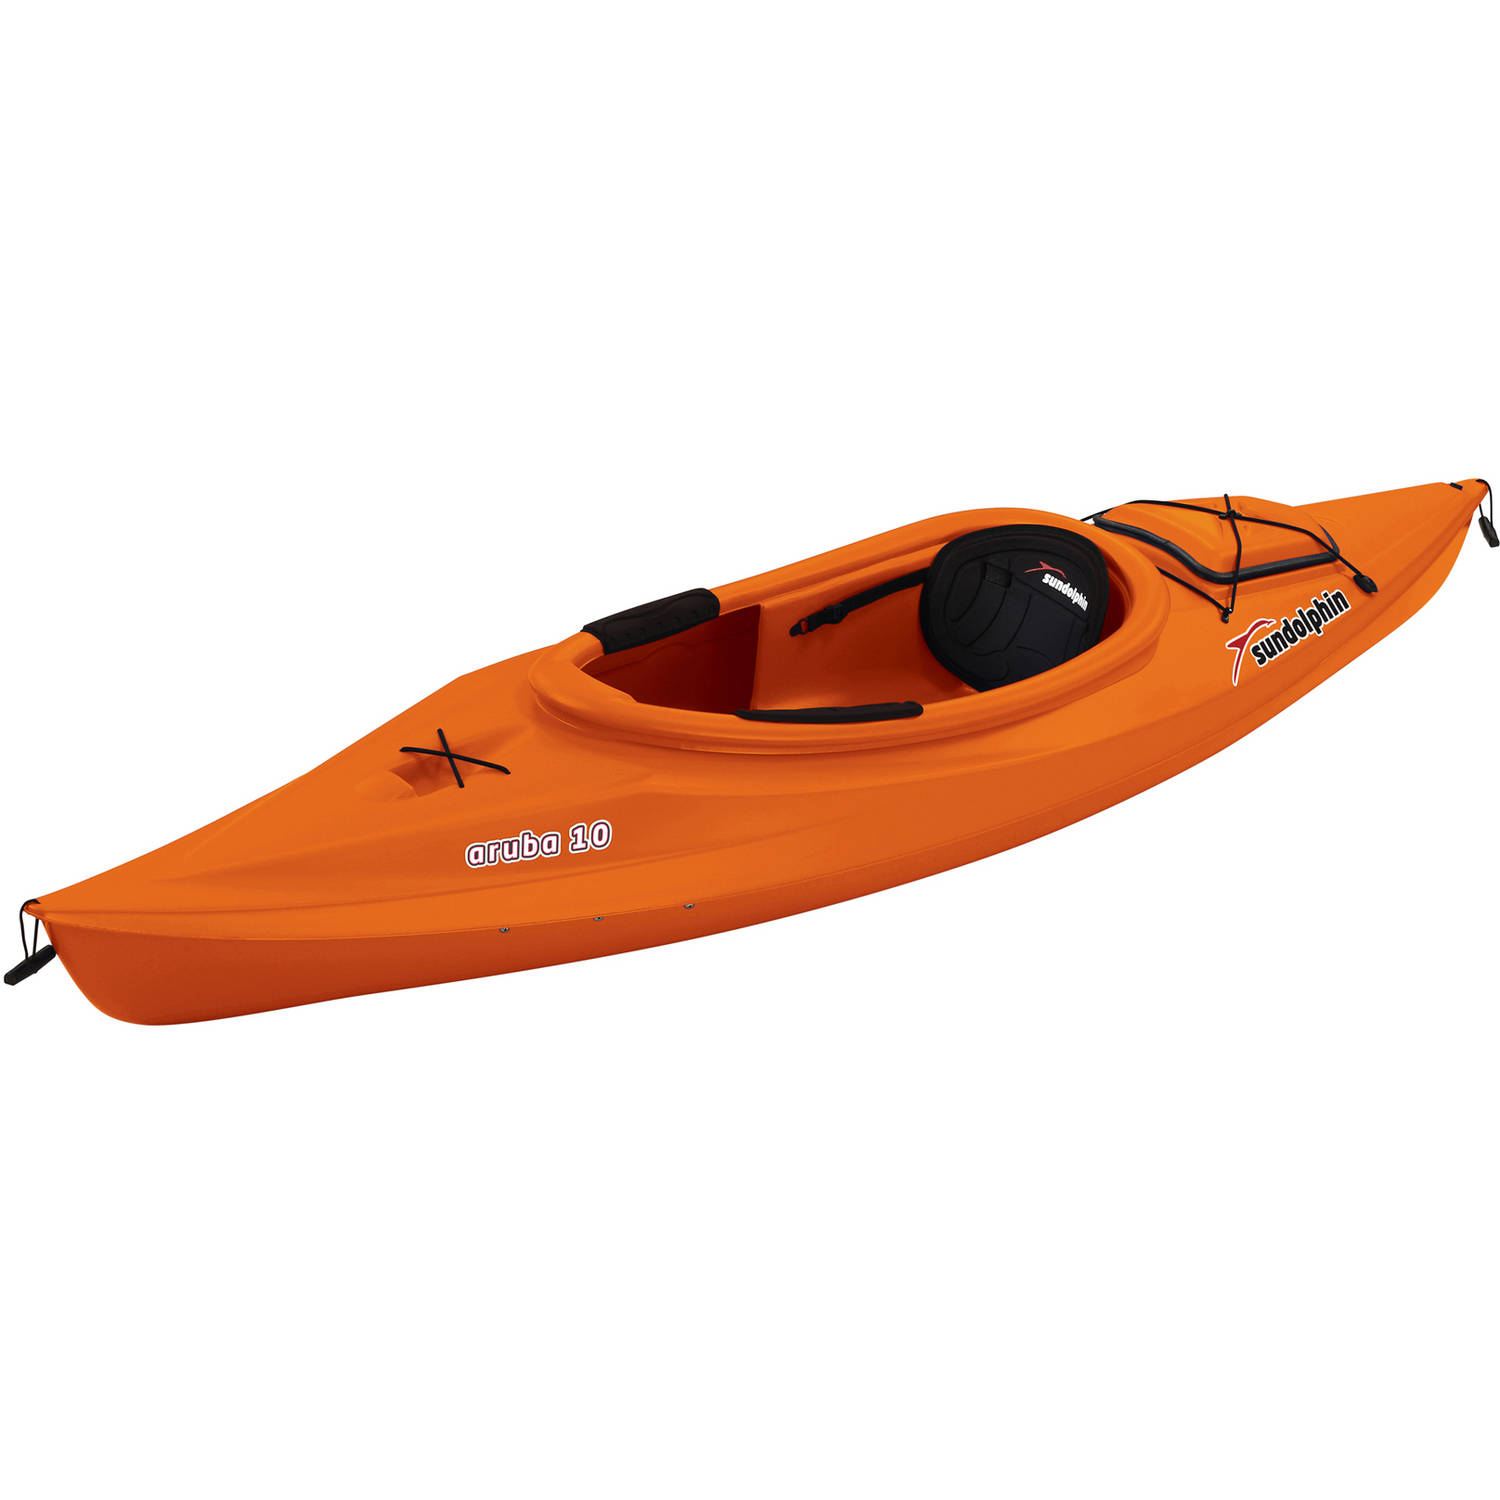 Sun Dolphin Aruba 10' Sit In Kayak, Paddle Included - Walmart.com